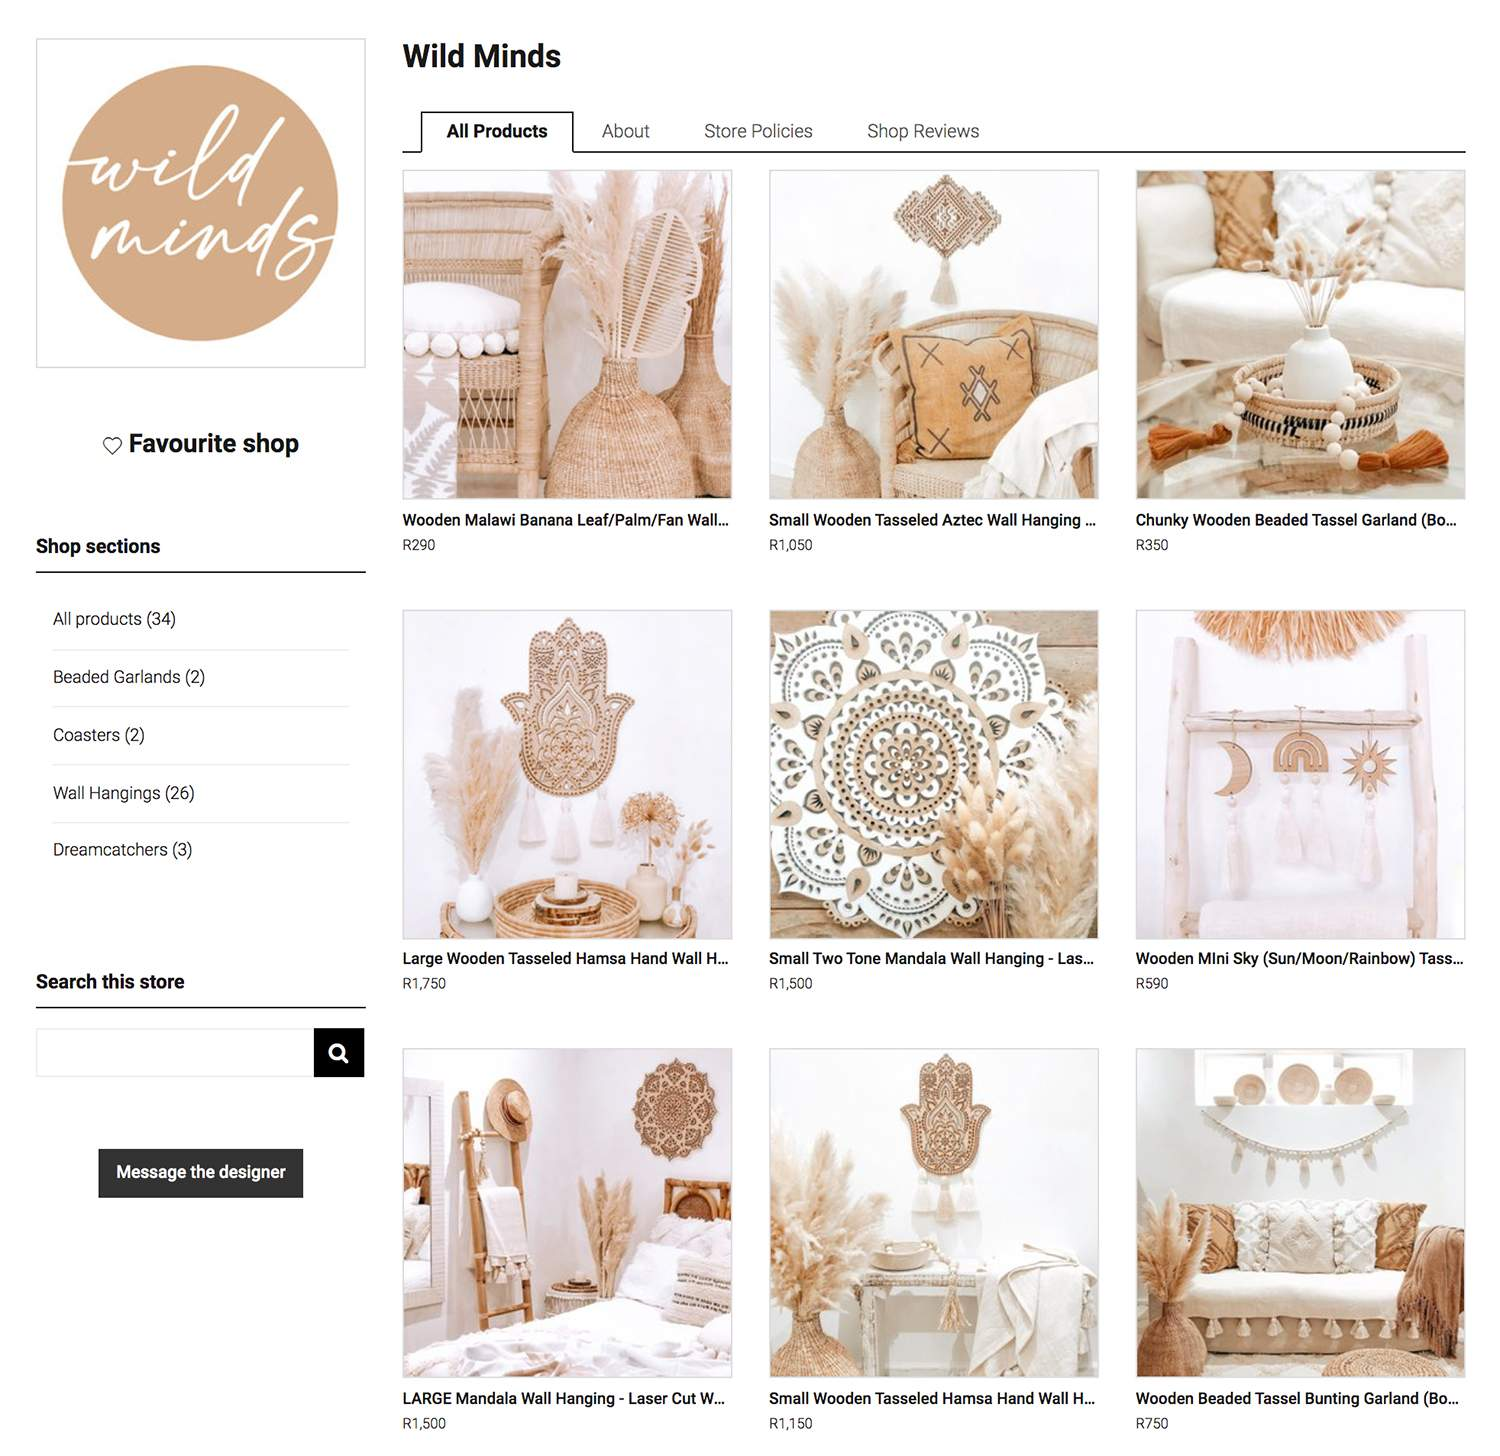 Wild Minds Store Look & Feel